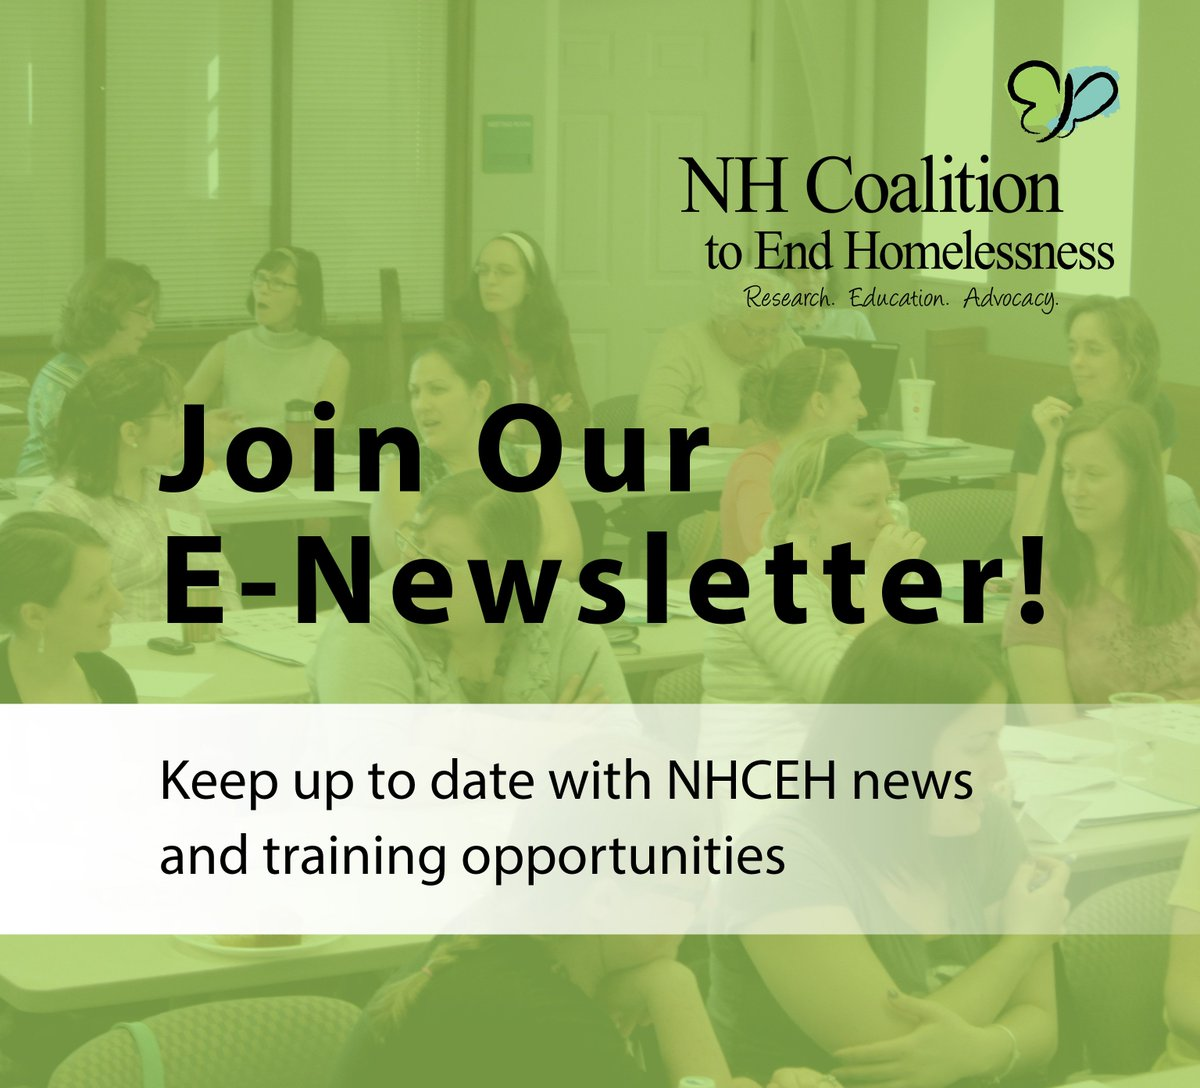 e17ee1969 Sign up for our e-newsletter today! You ll receive updates 2-4 times a  year. http   www.nhceh.org news-updates email-subscription  …pic.twitter.com  ...